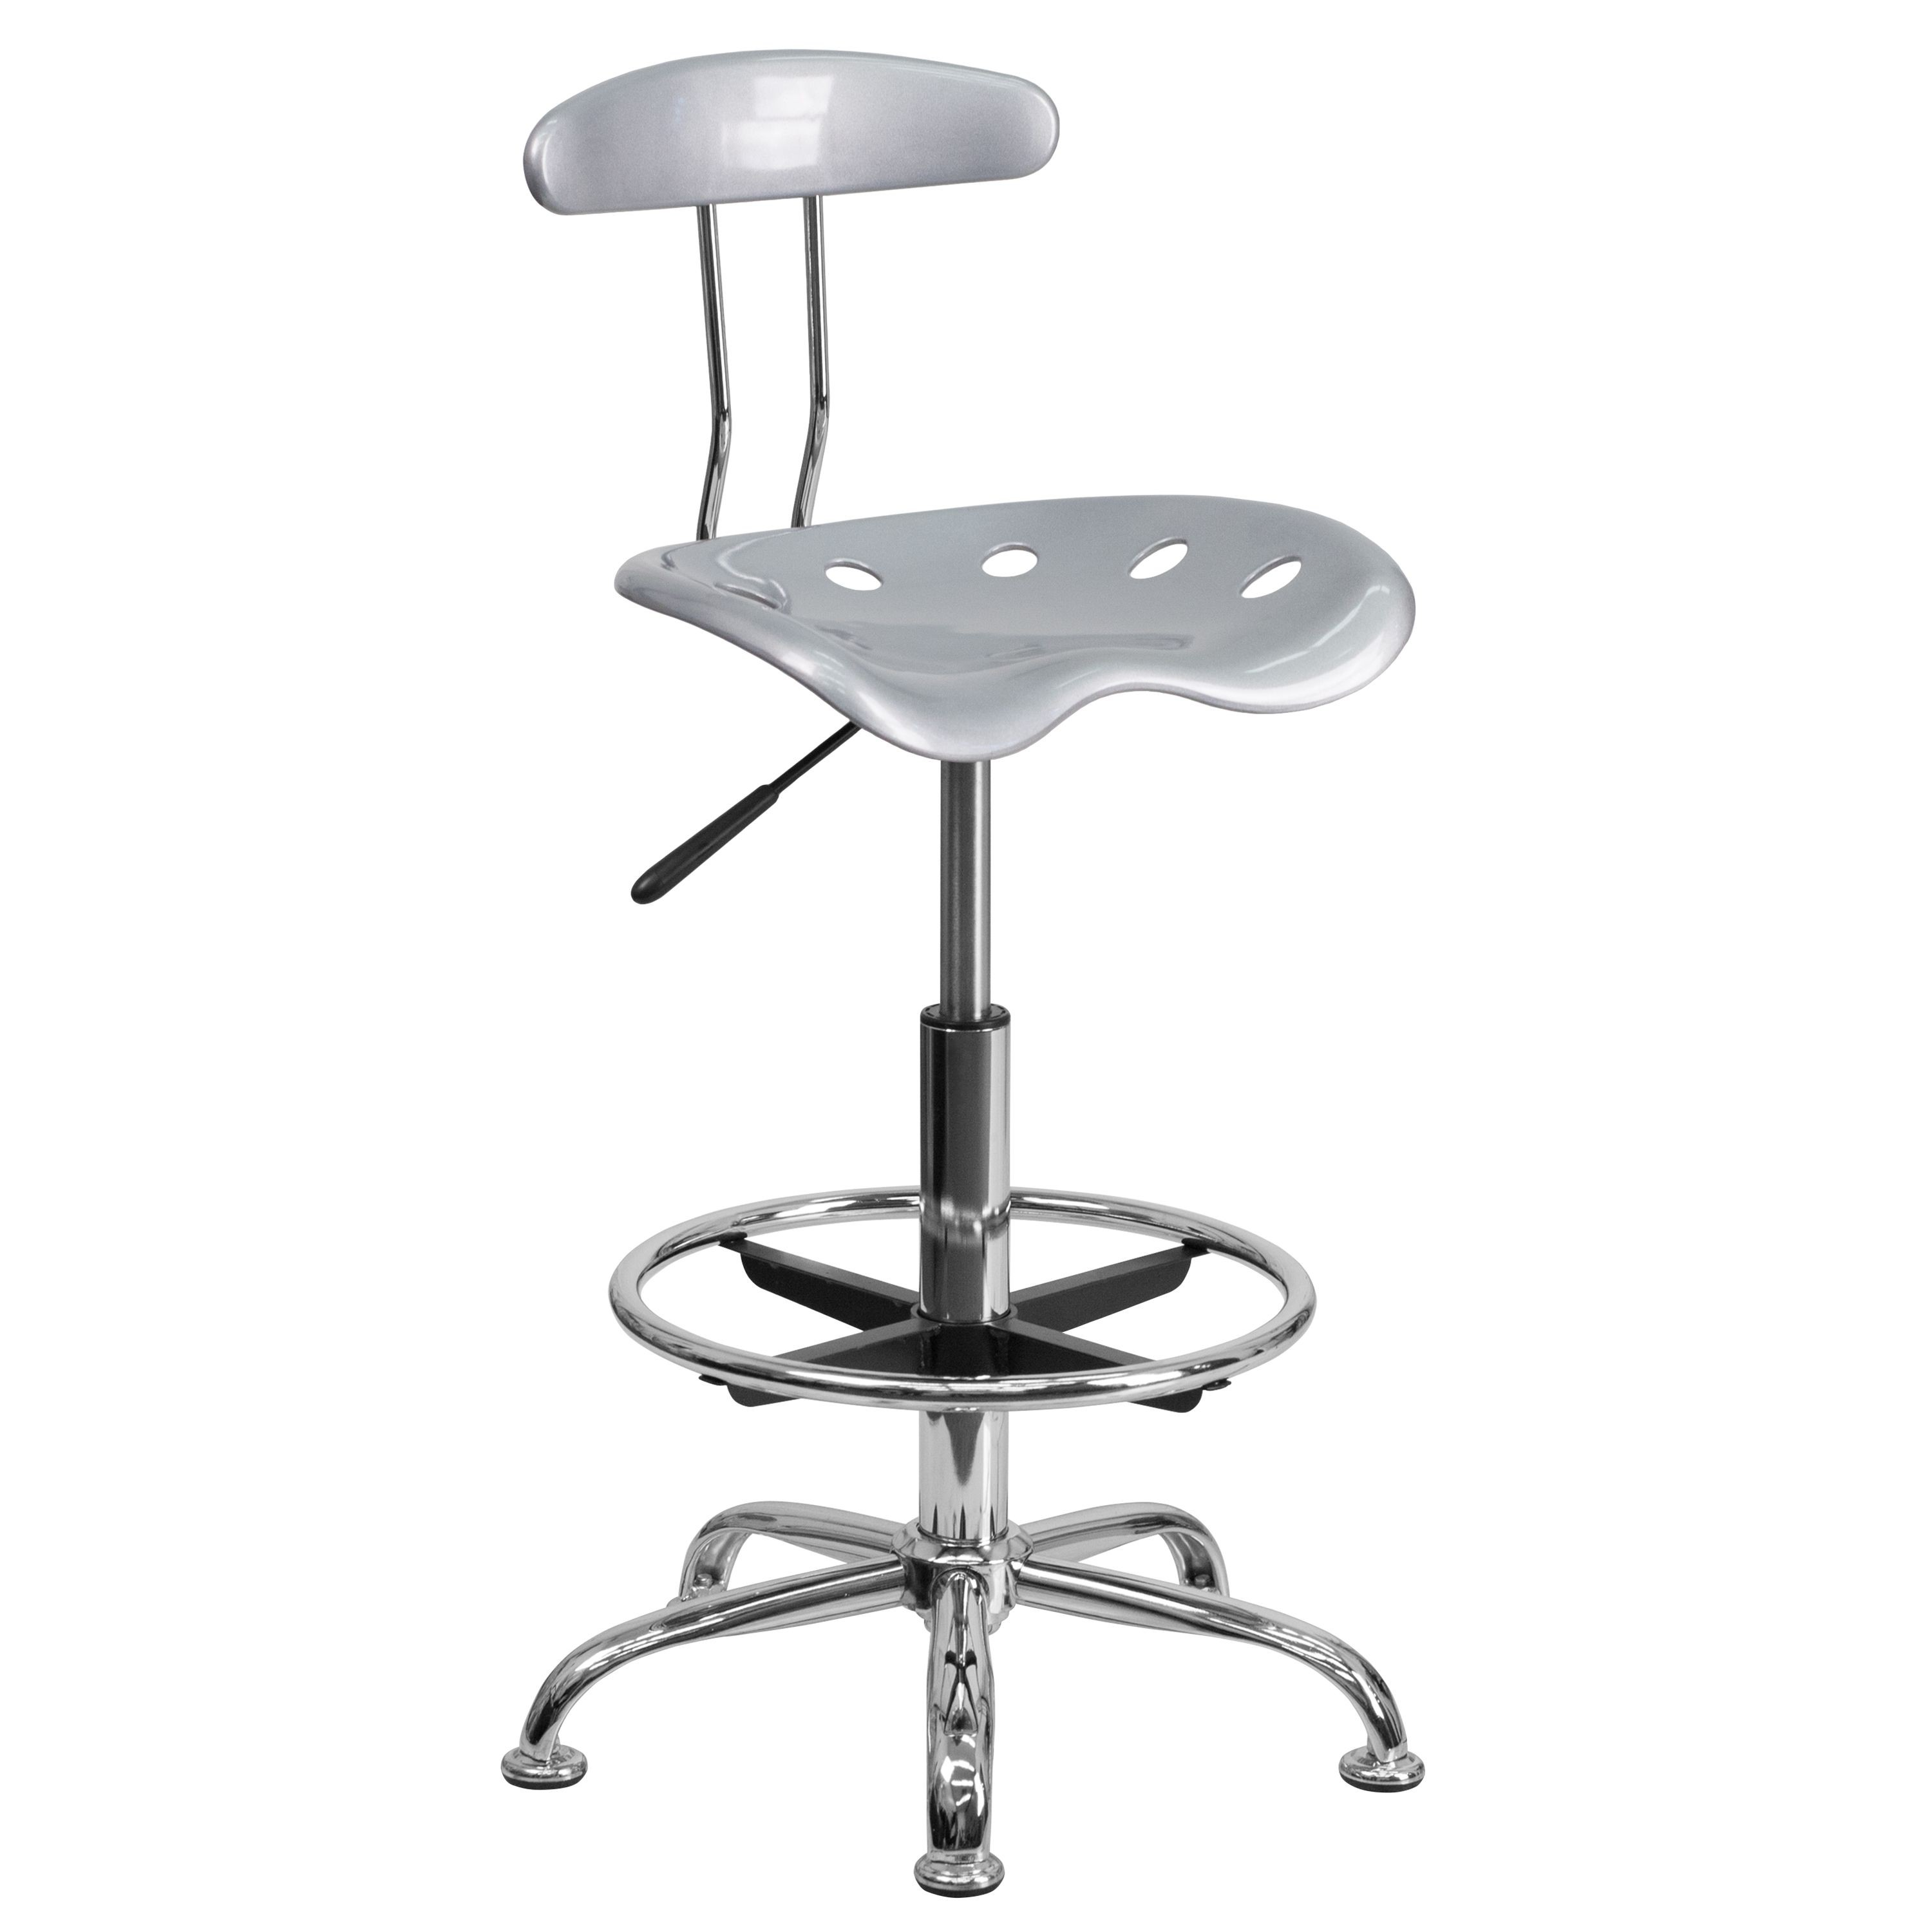 Flash Furniture LF-215-SILVER-GG Vibrant Silver and Chrome Bar Stool Height Drafting Stool with Tractor Seat